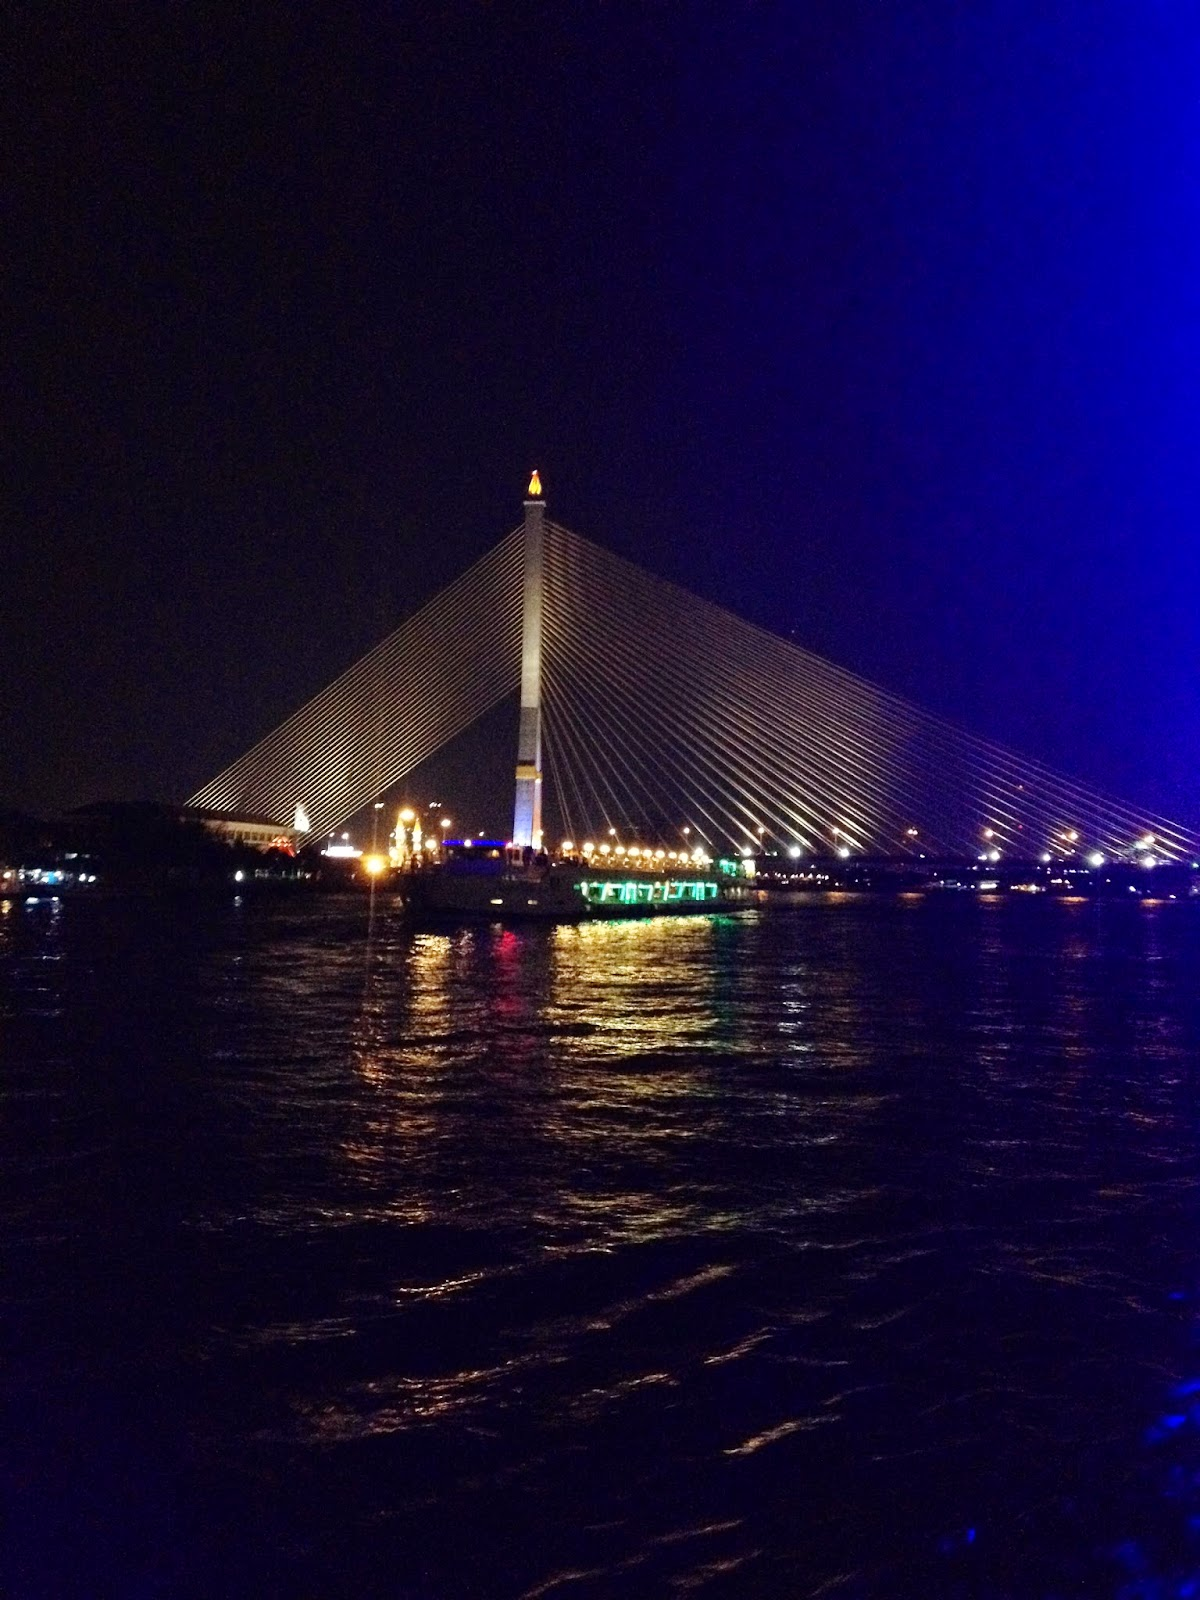 Chao Phraya Dinner Cruise Bangkok Bridge